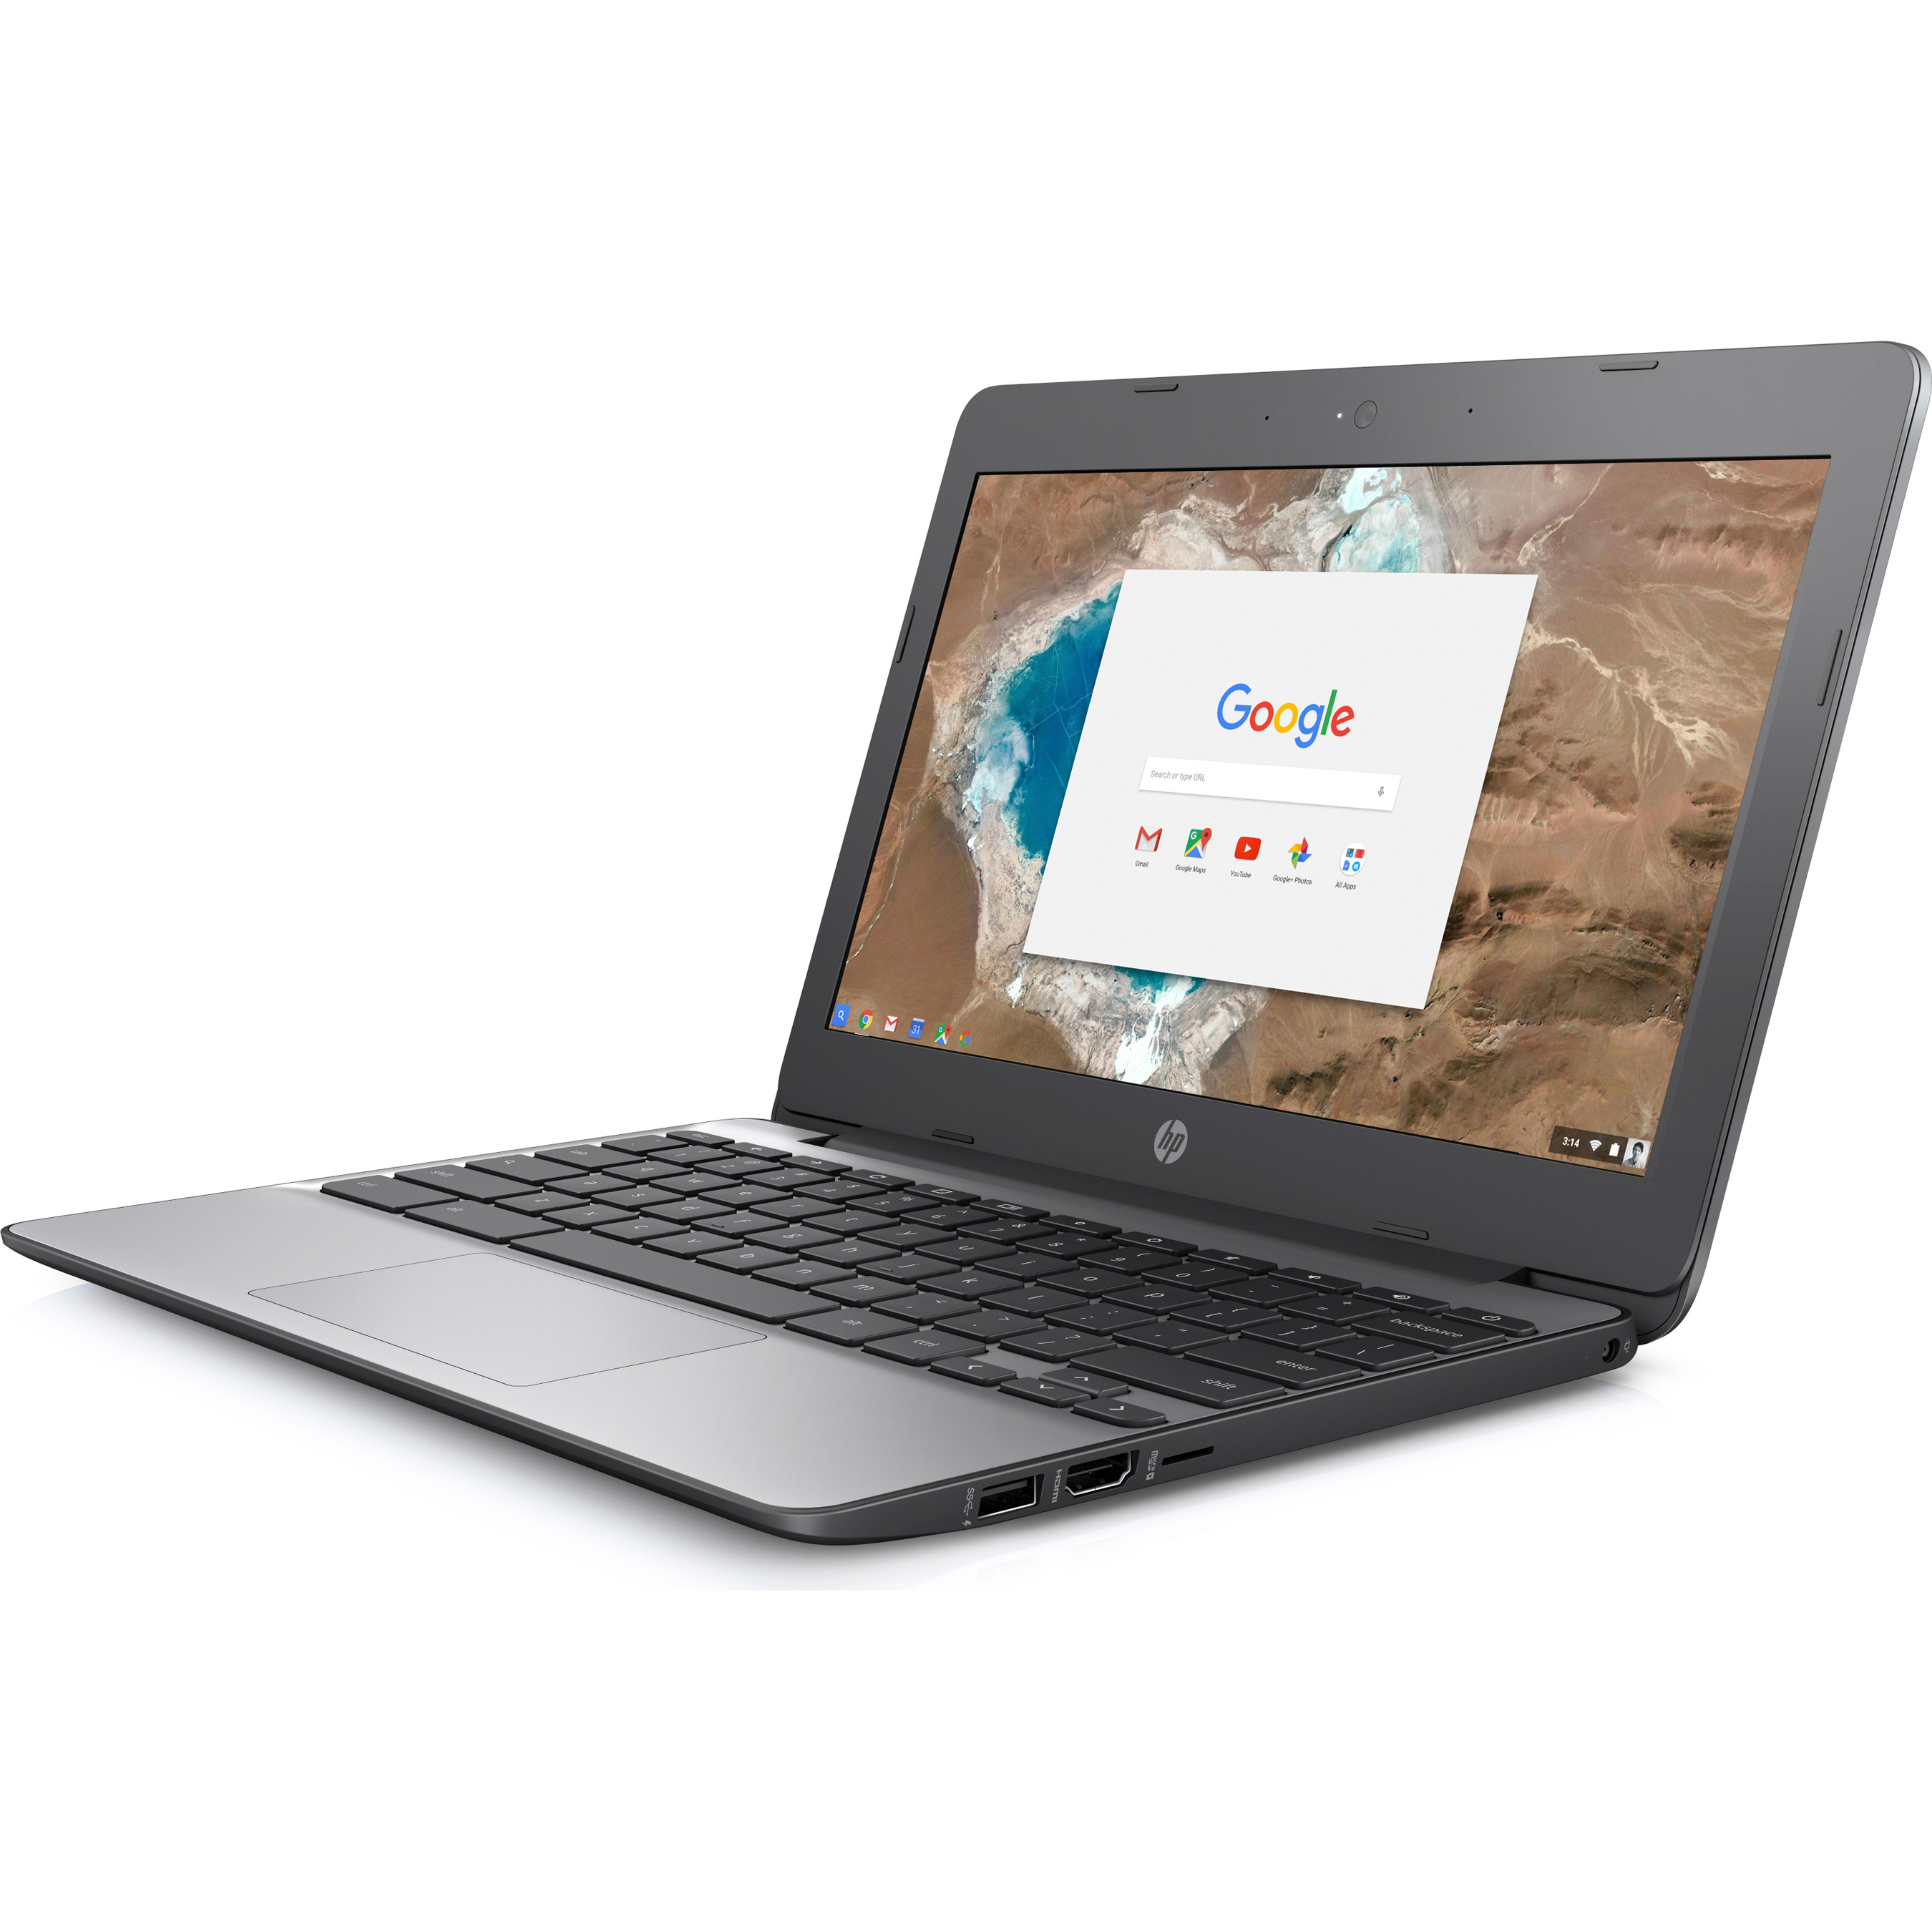 hp chromebook 11 v010nr review